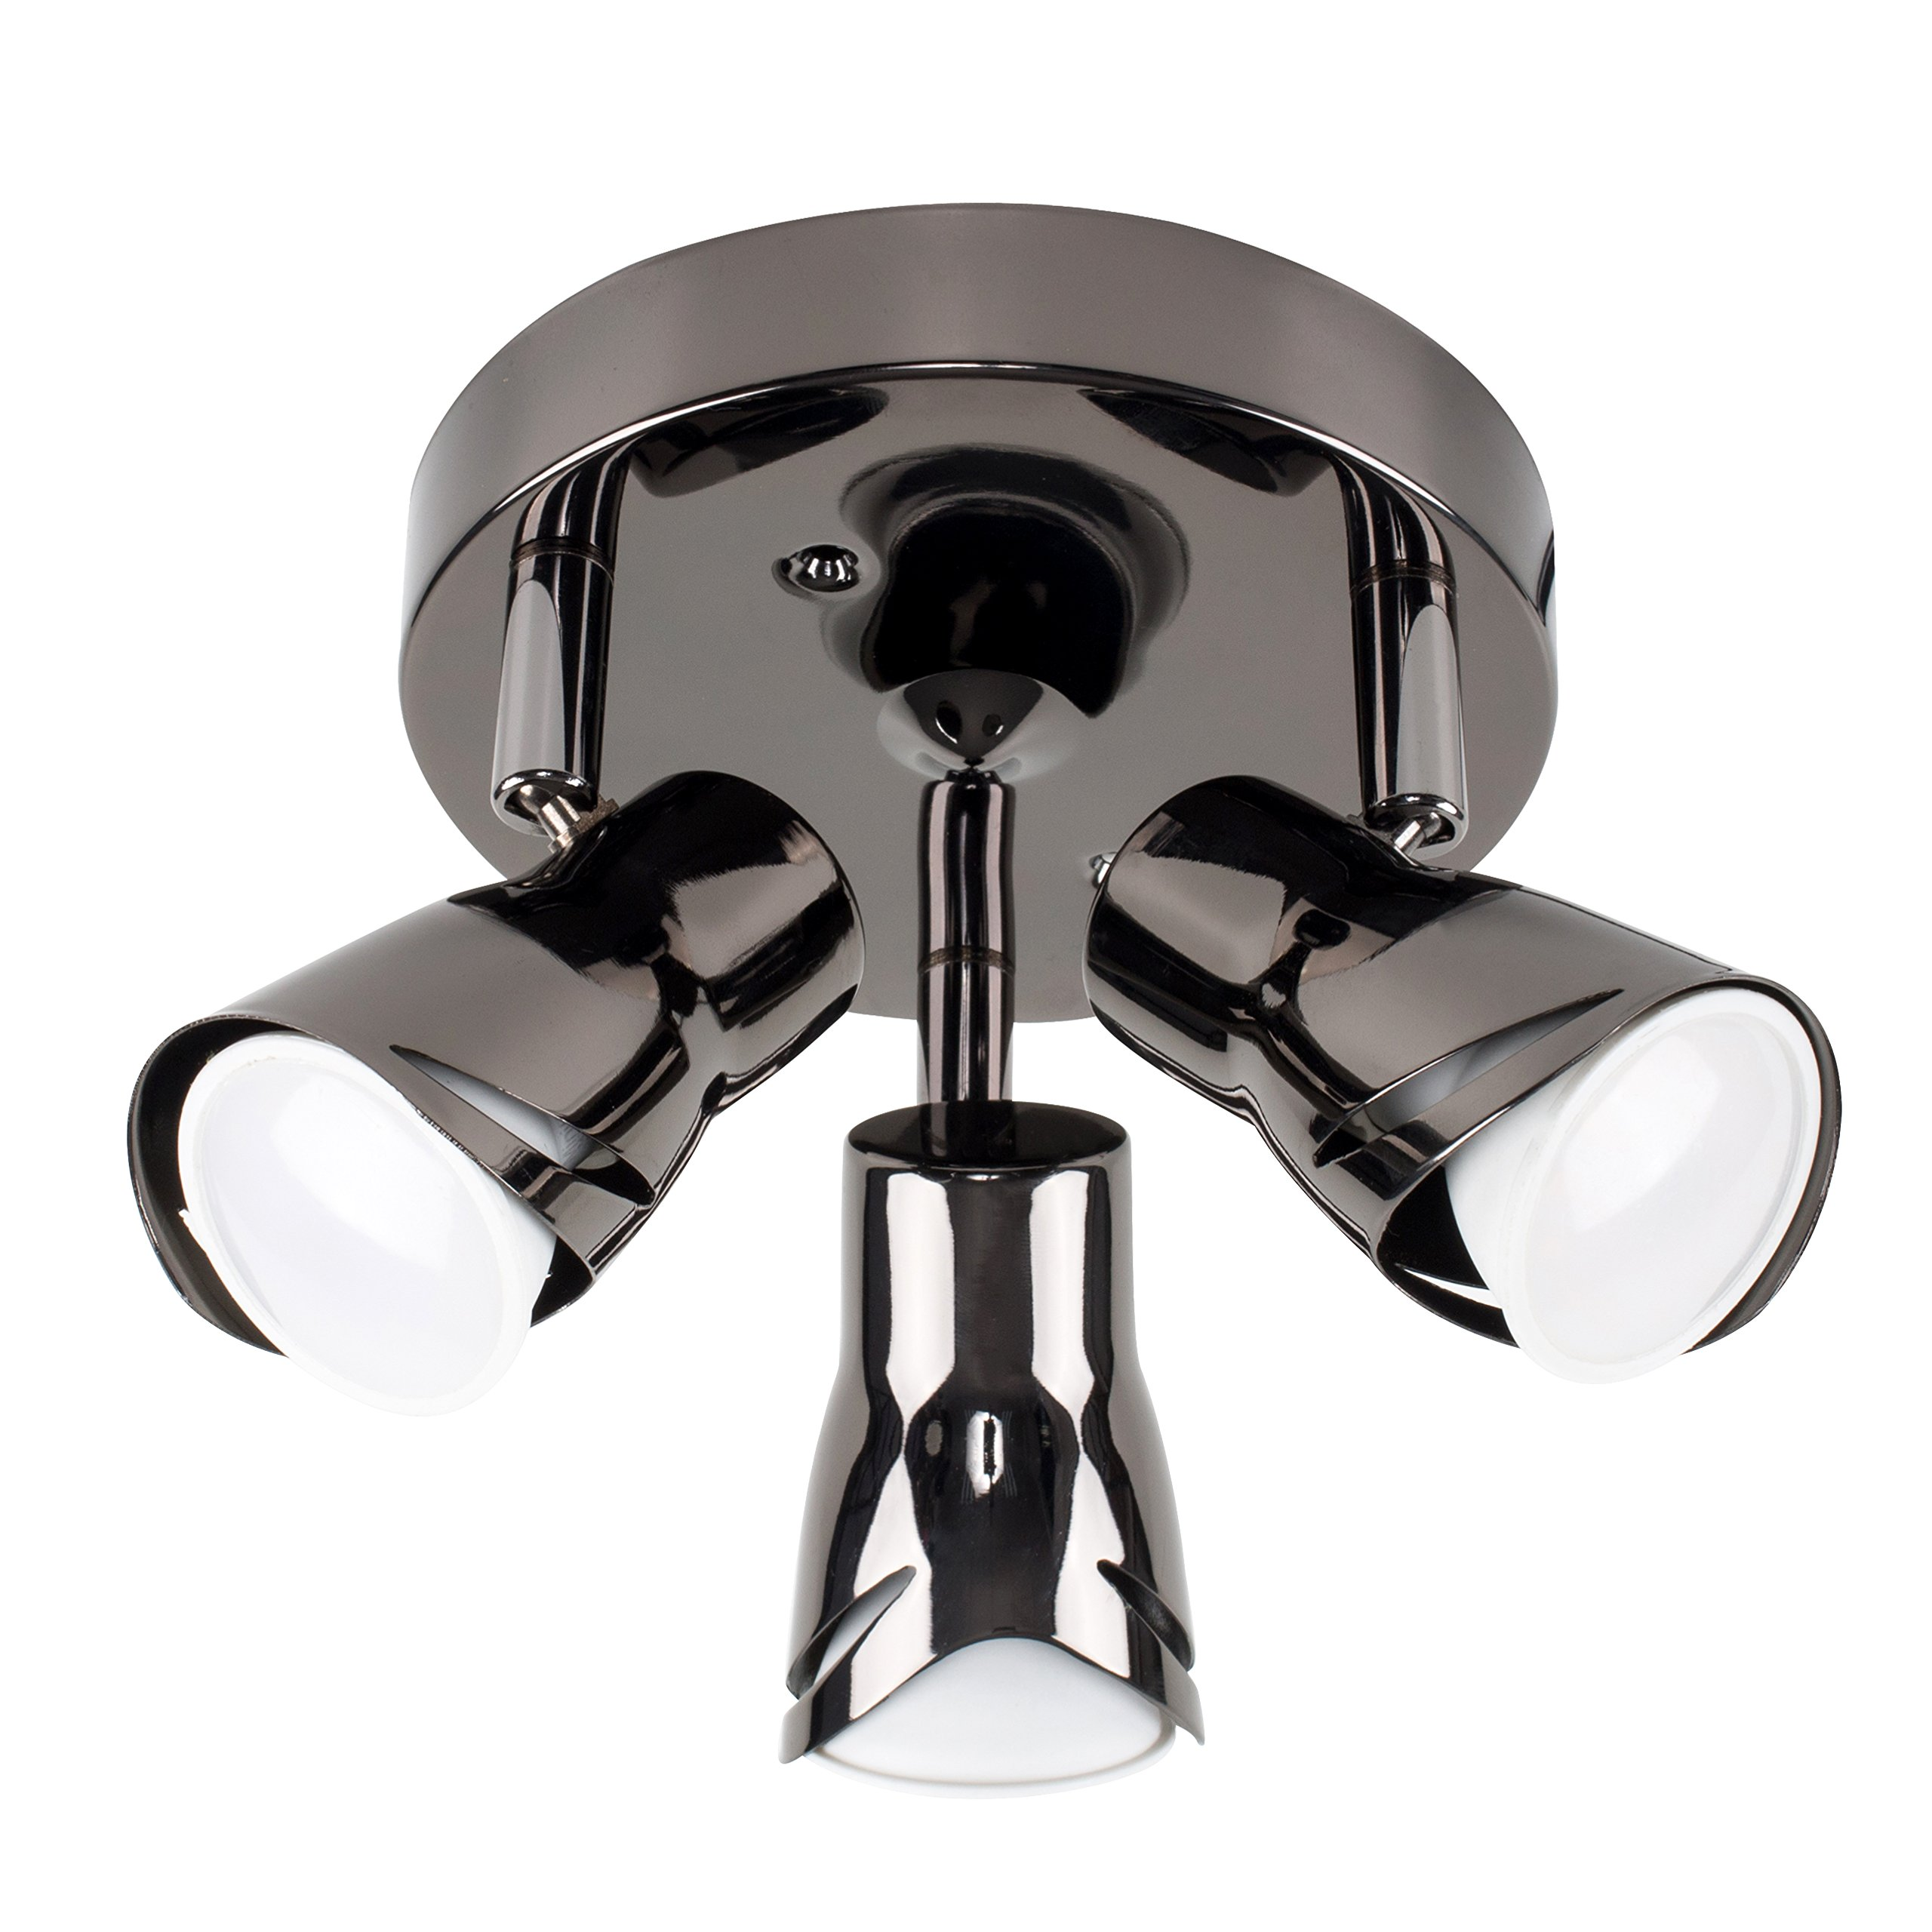 Kitchen Spotlights Amazoncouk - Black kitchen spotlights